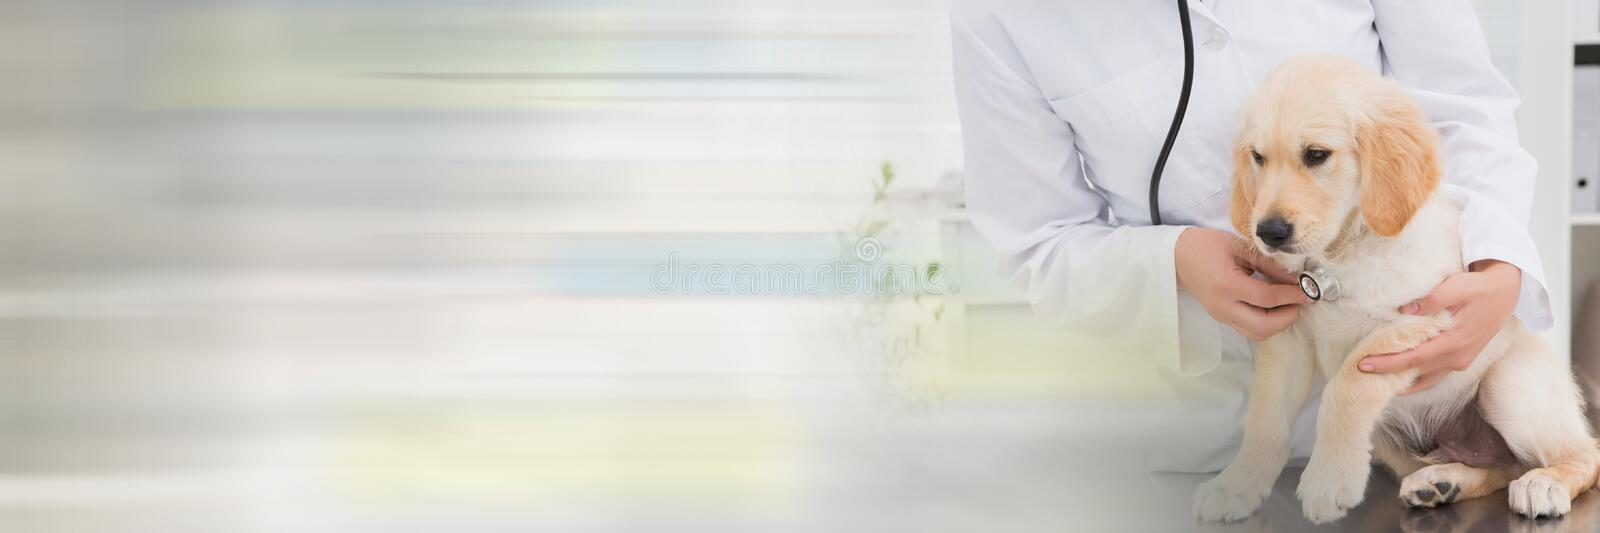 Vet woman taking care of a puppy royalty free stock photo